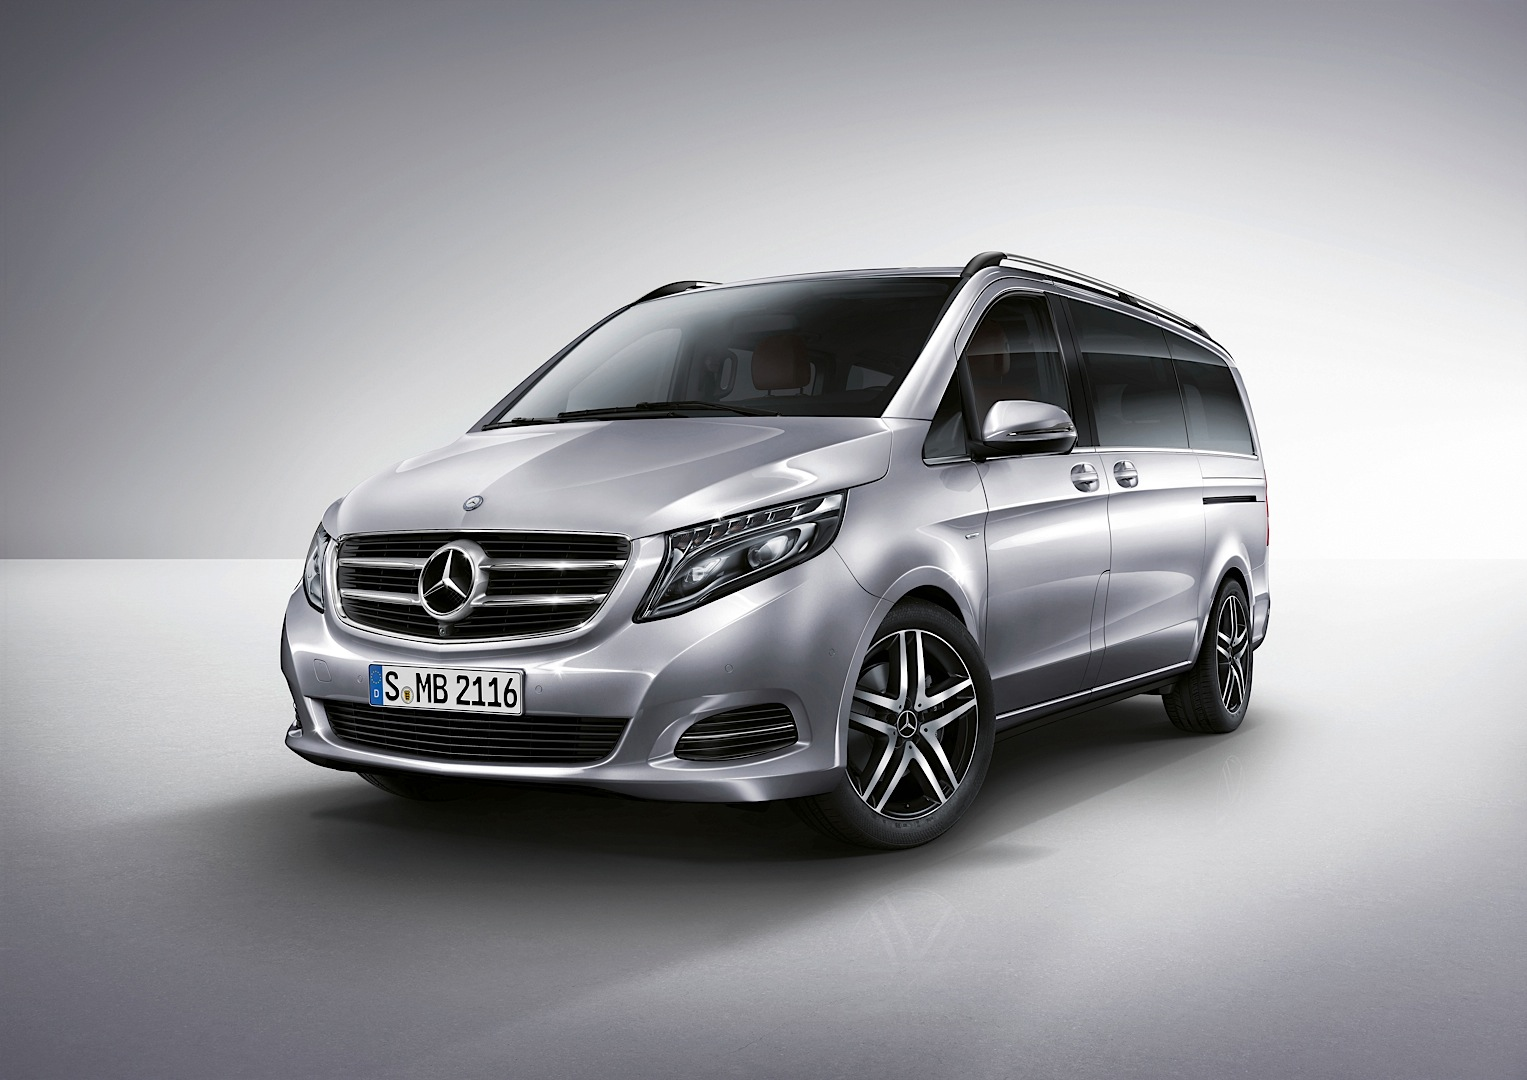 Mercedes benz viano van coming in 2015 shifting gears for Mercedes benz van 2015